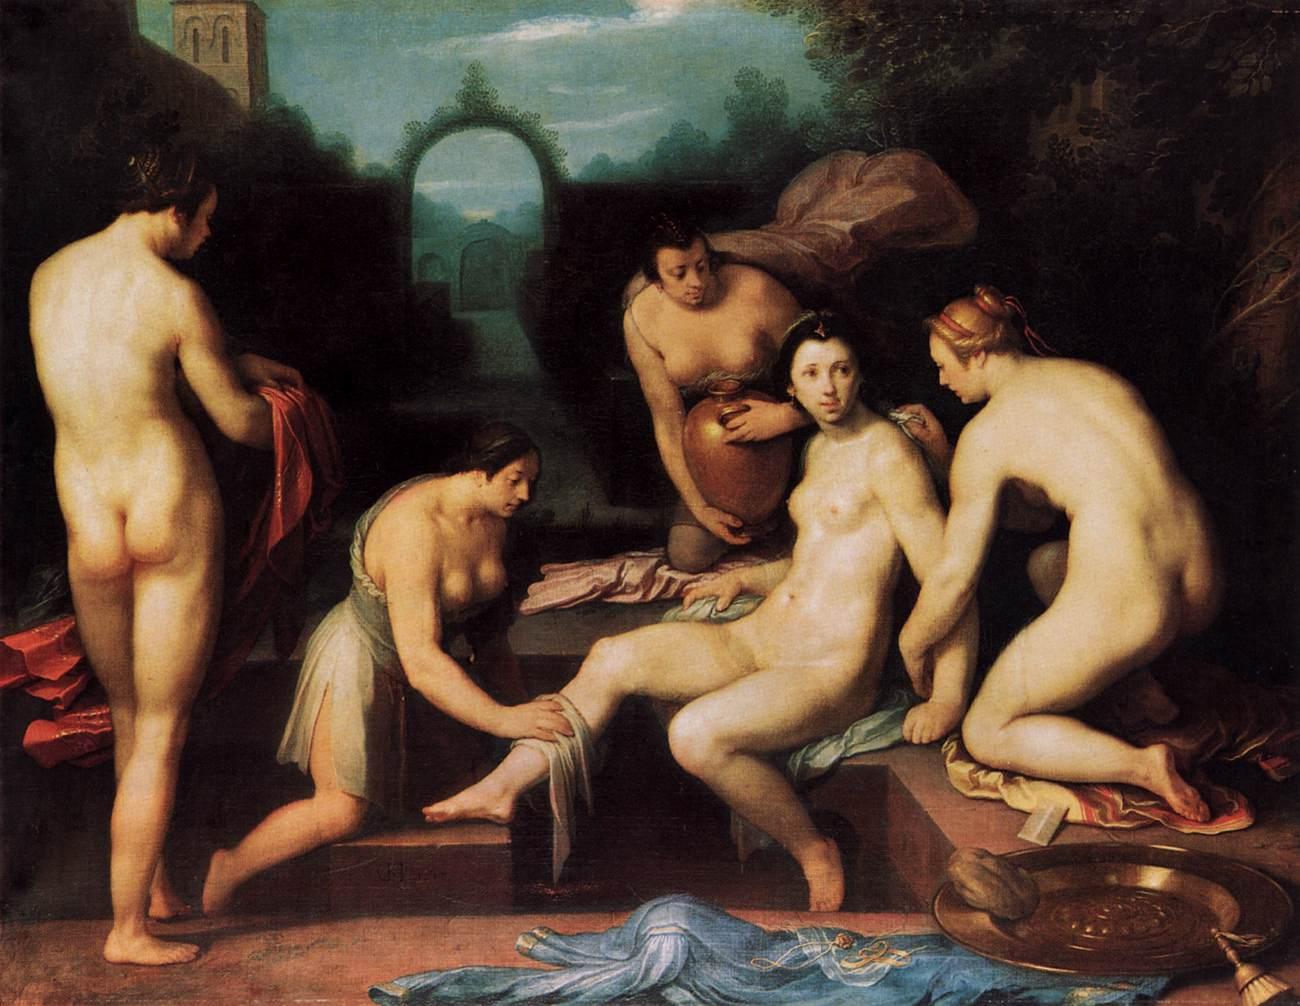 Old painting of a woman being washed by several other people